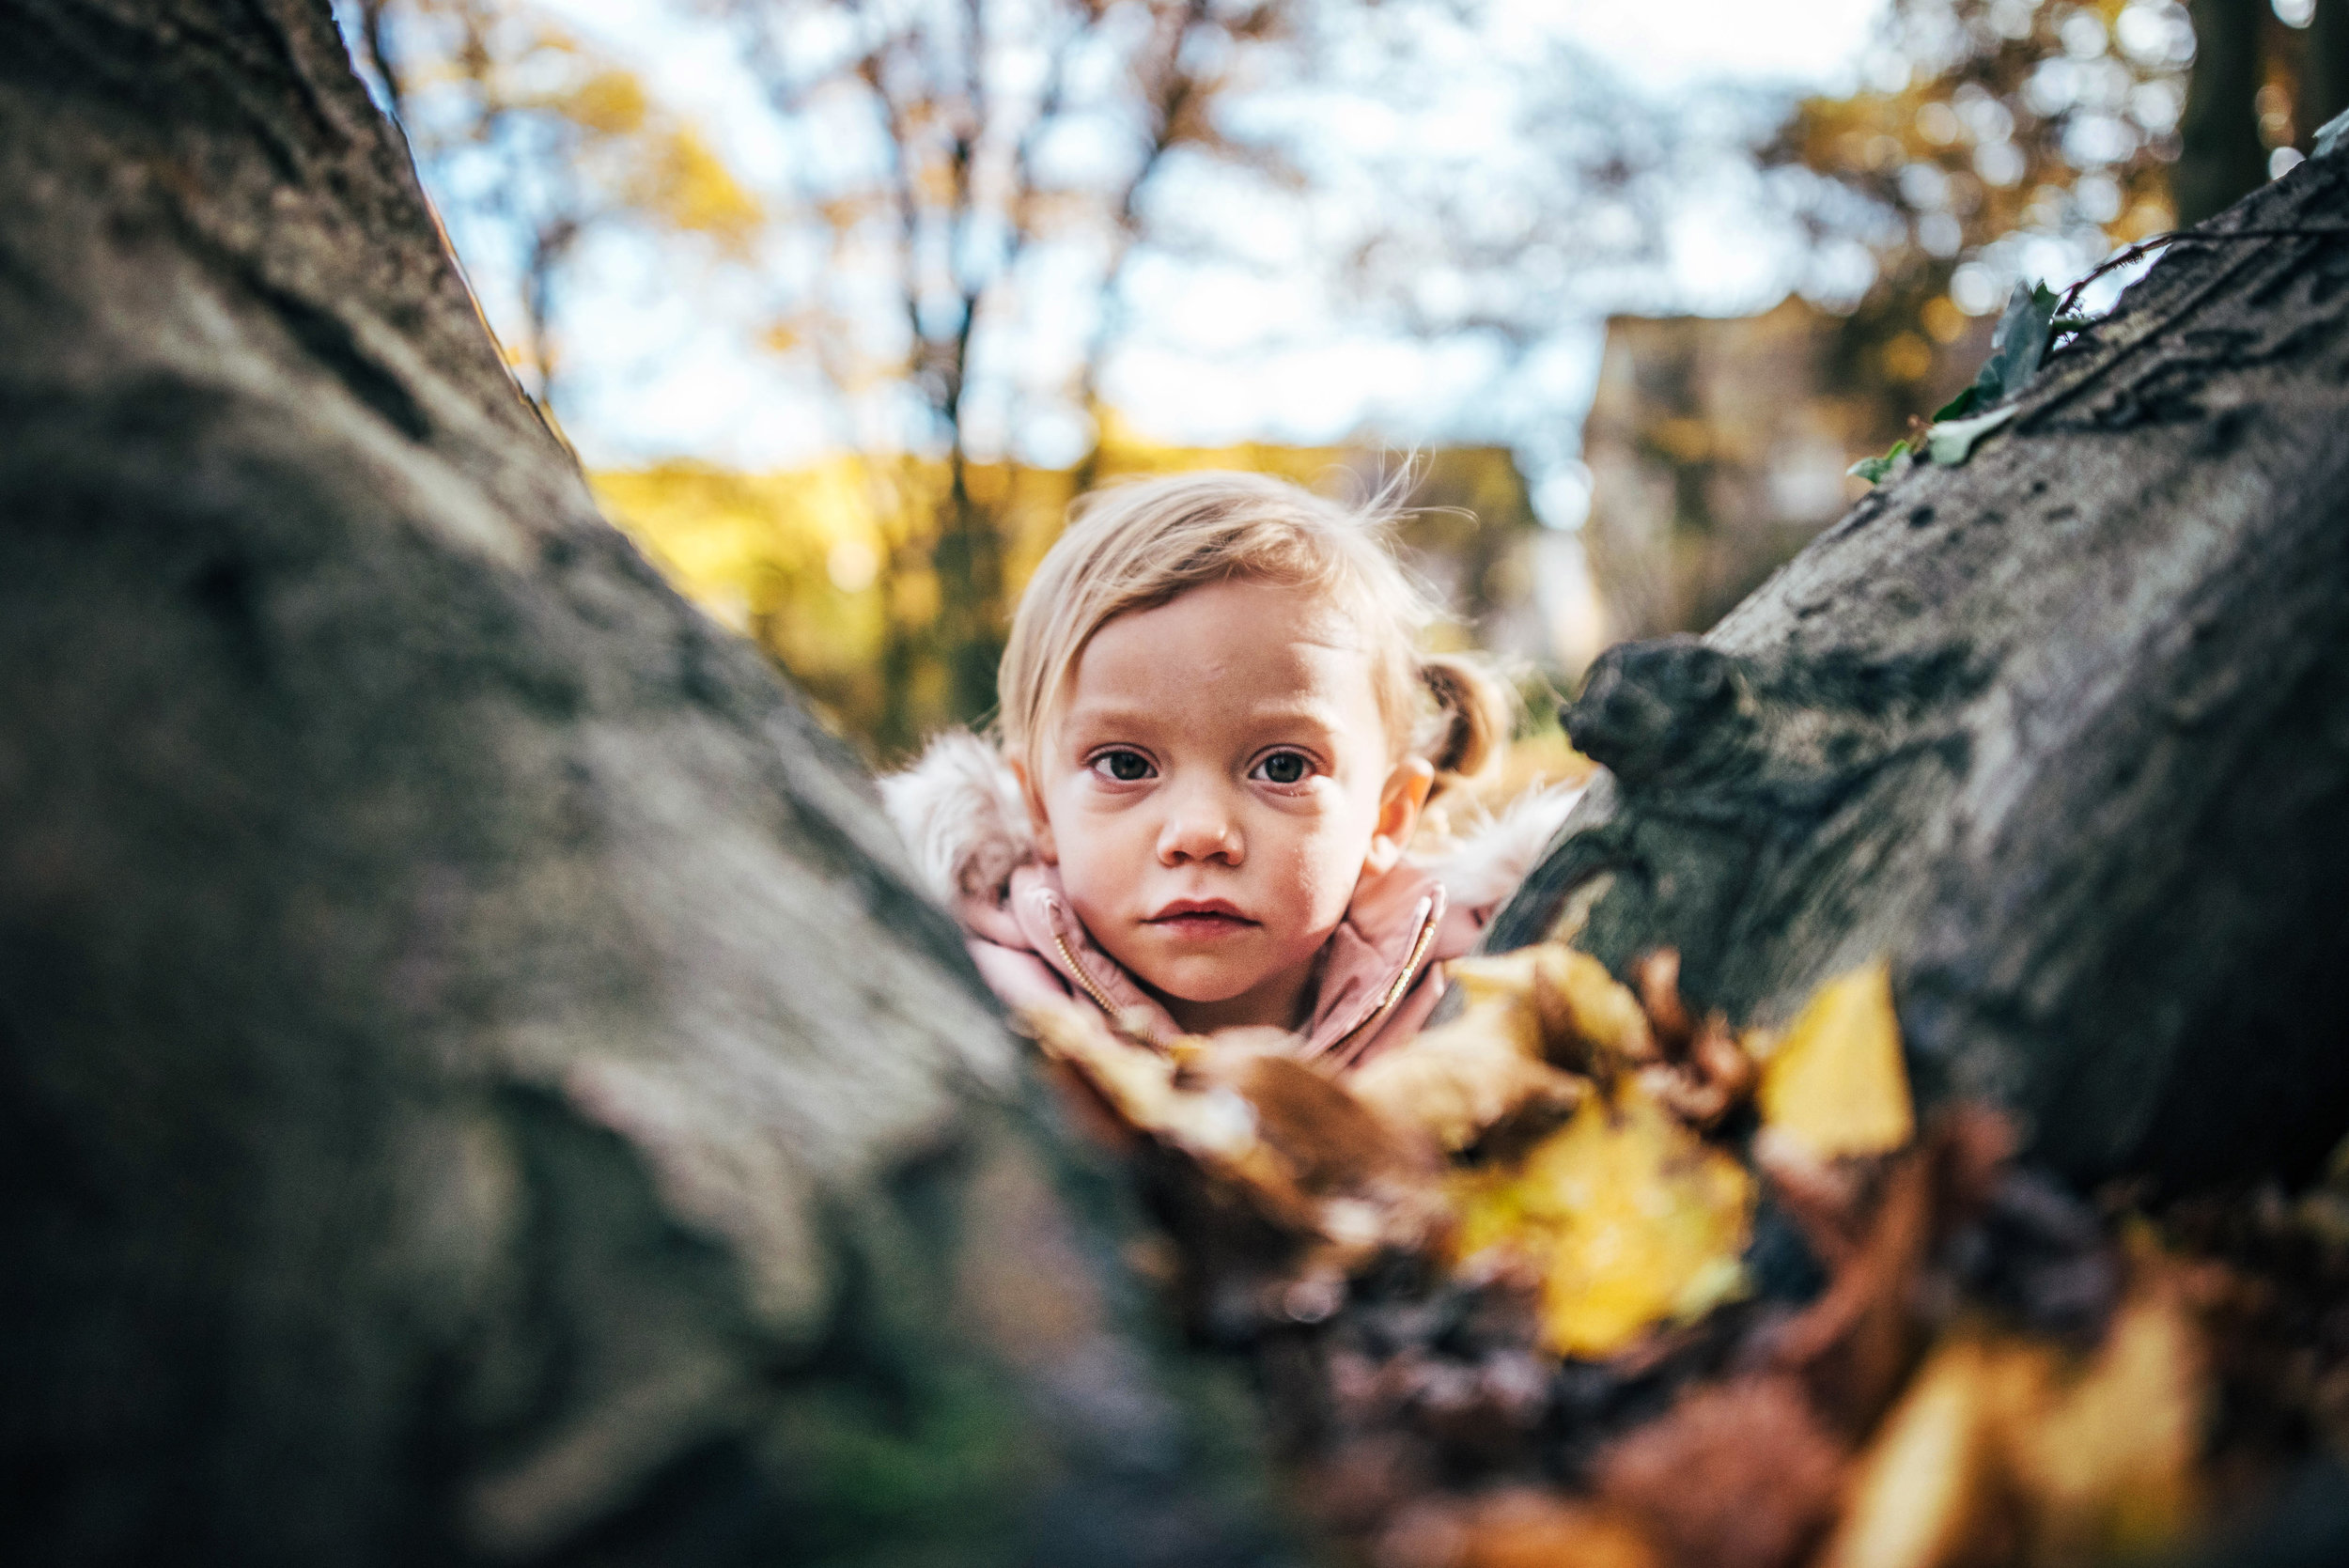 little girl by a tree in autumn essex uk documentary childhood lifestyle family photographerw